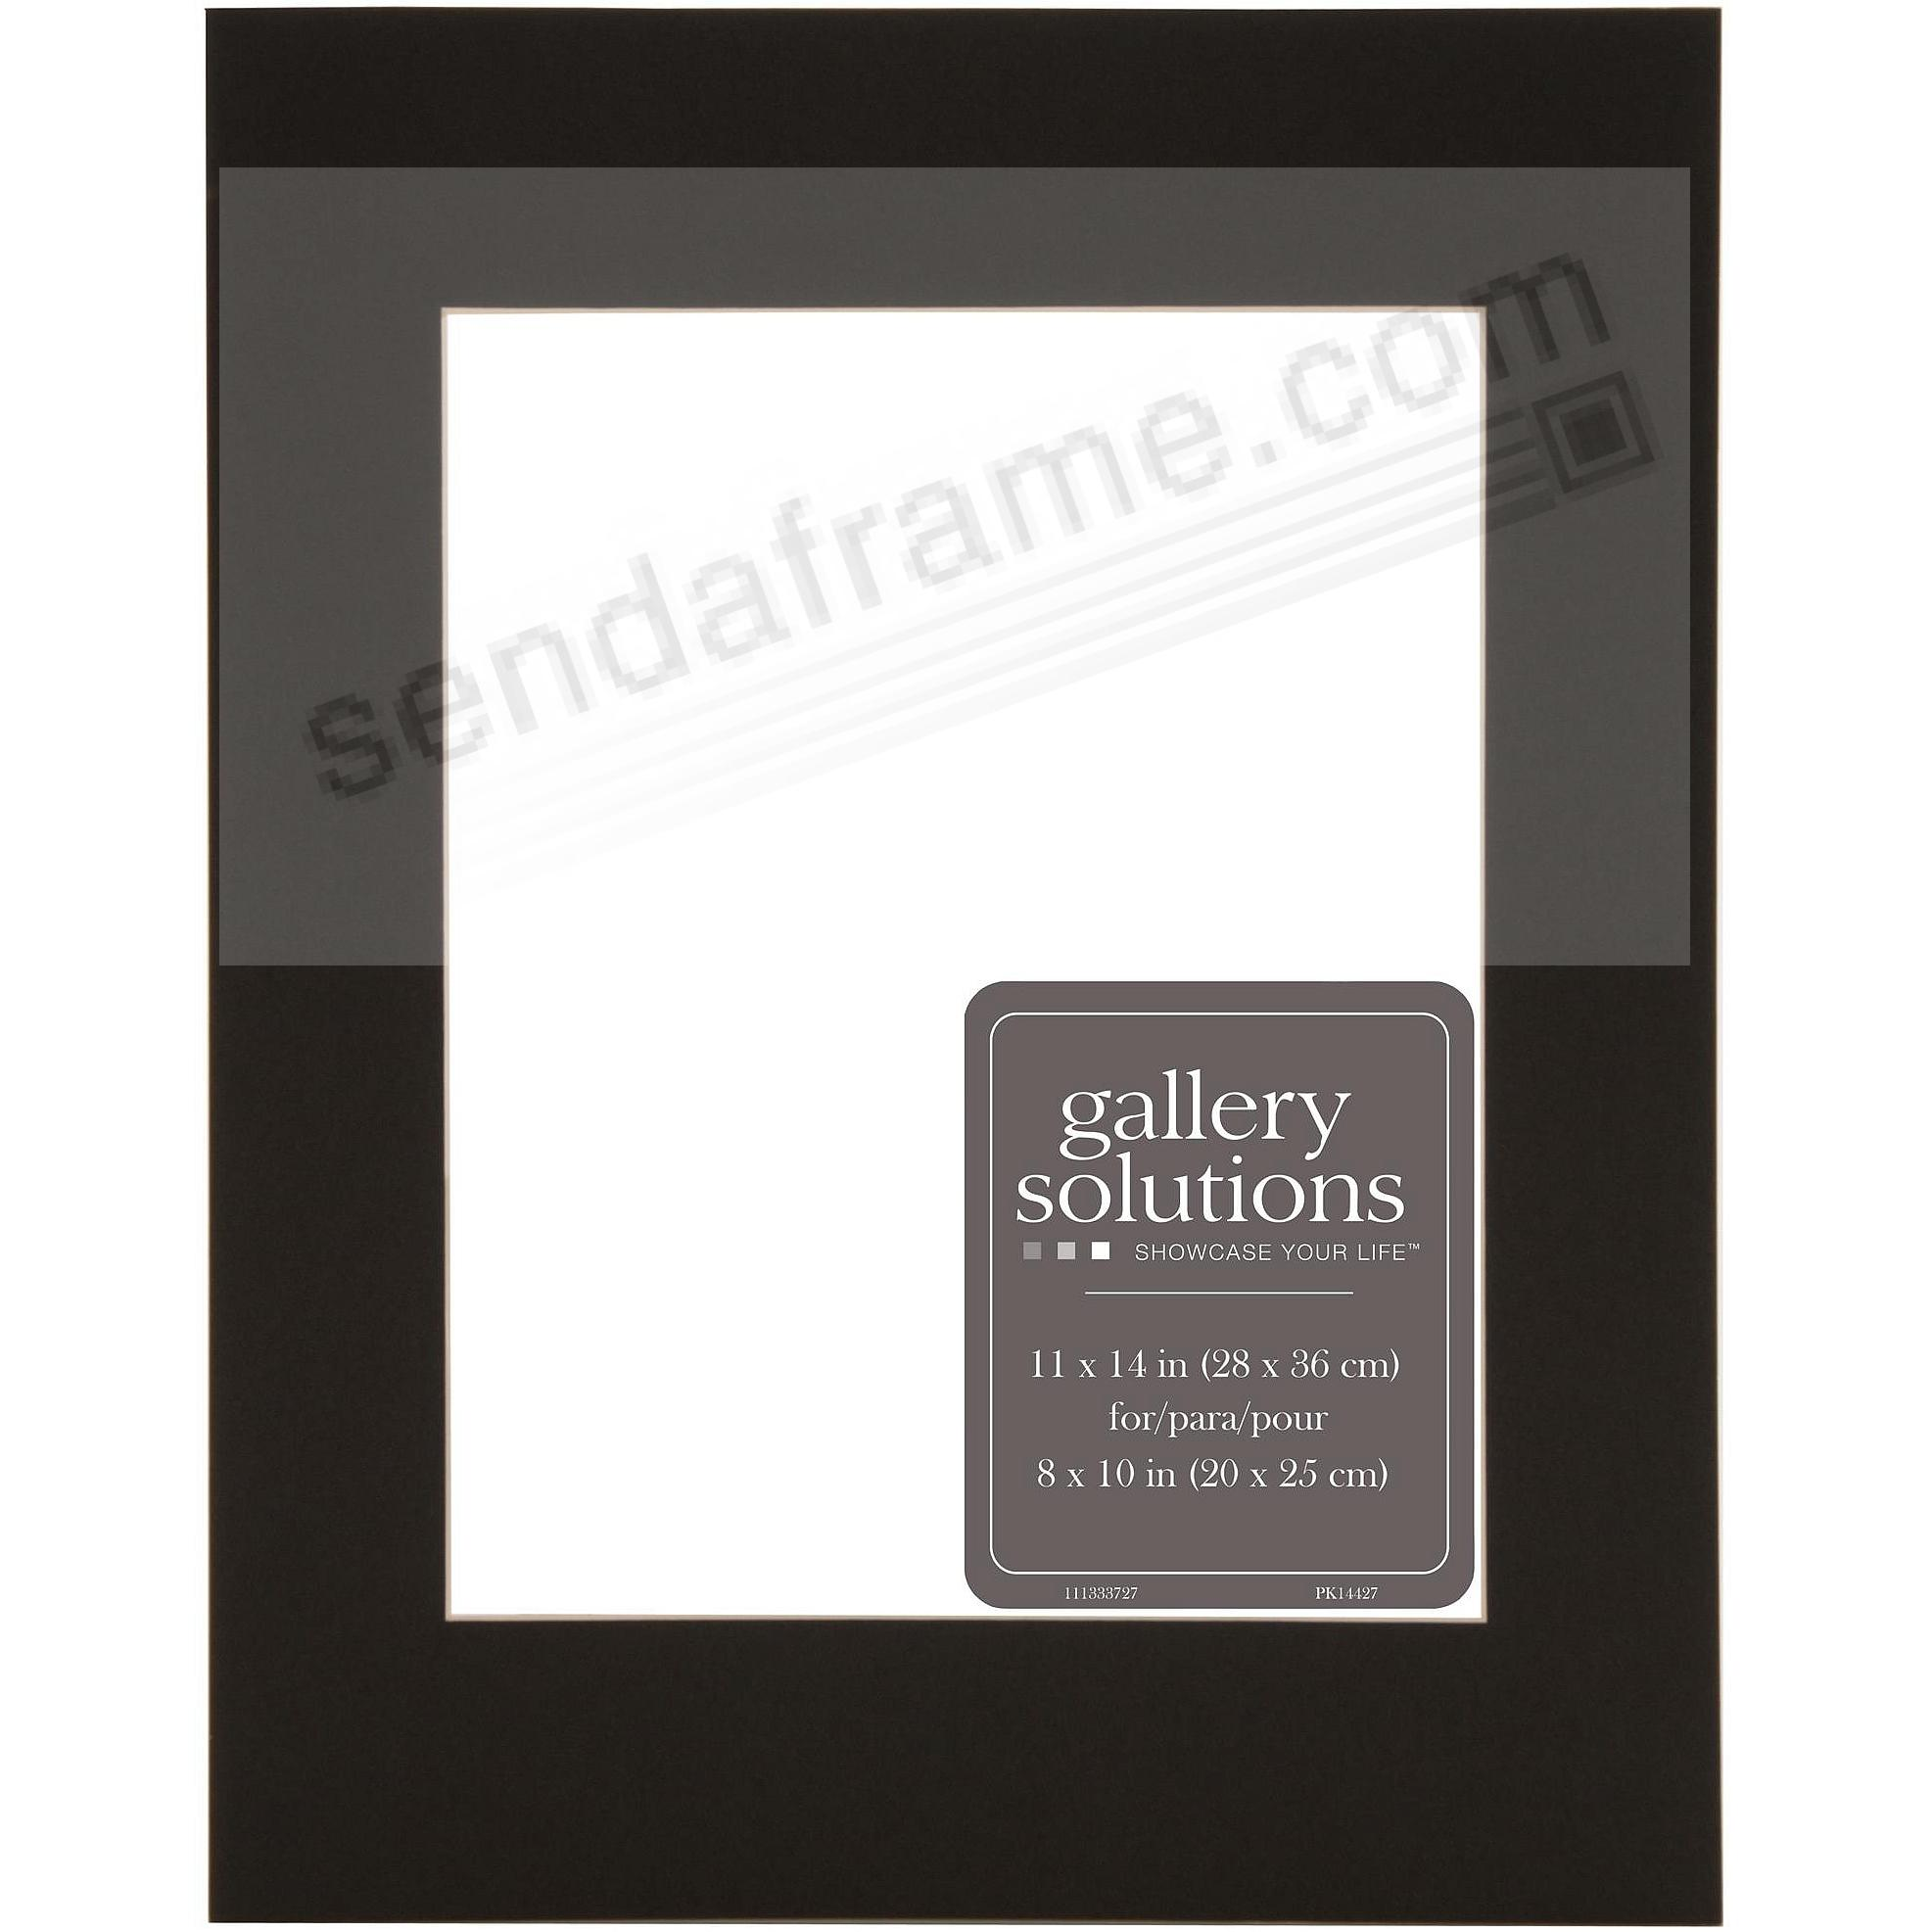 mats picture frame garden product free today home double overstock shipping mat gallery to with